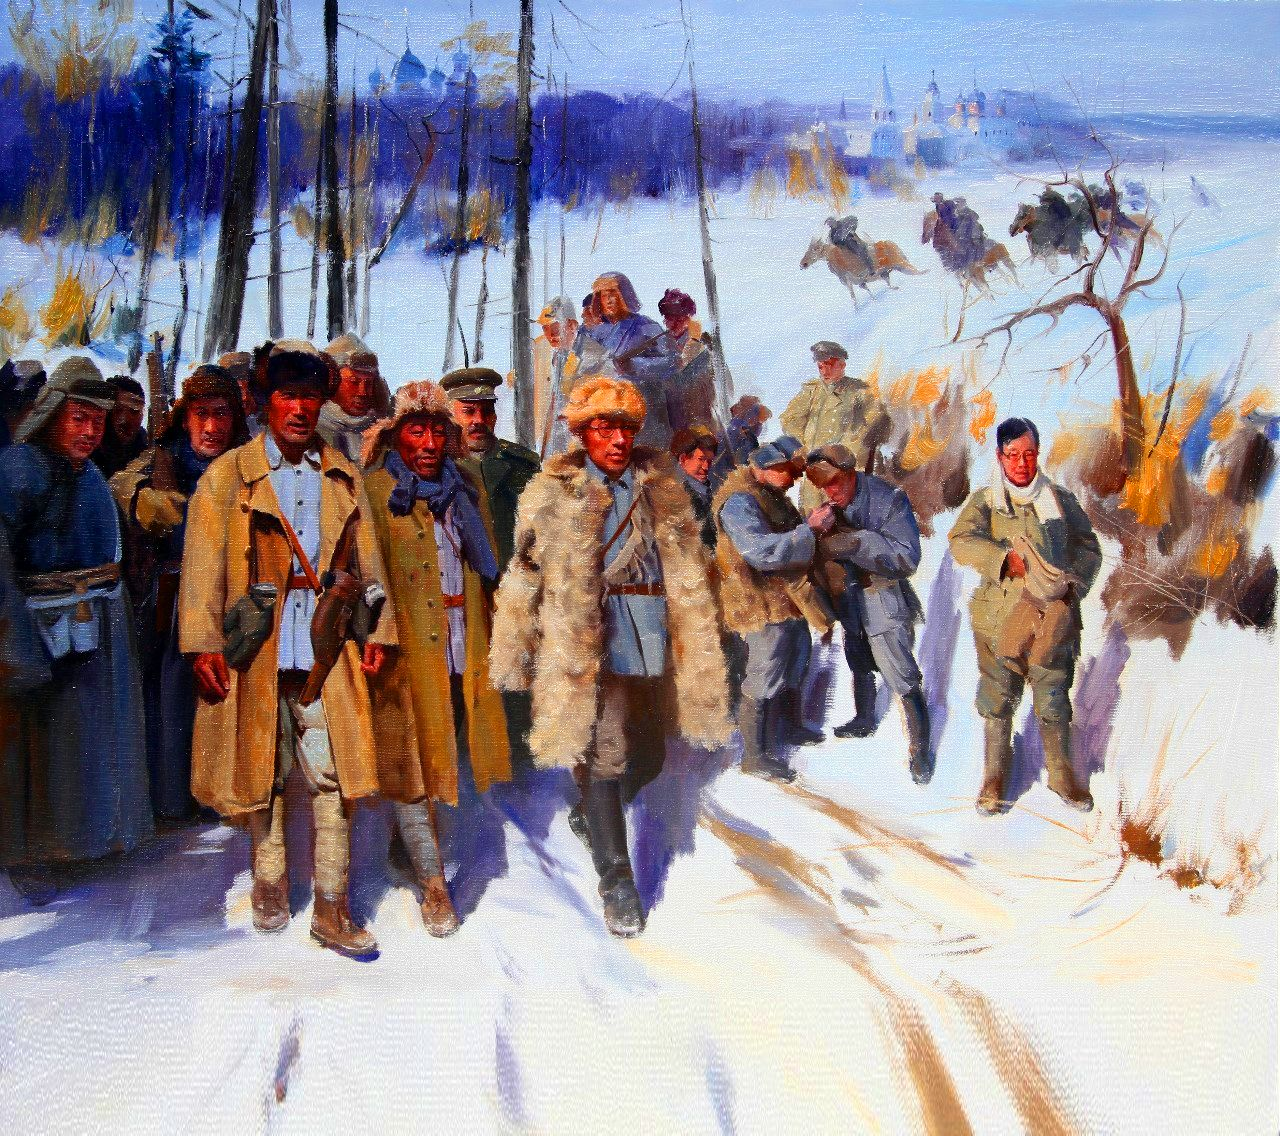 Chinese Troops On Campaign In Winter Northern China